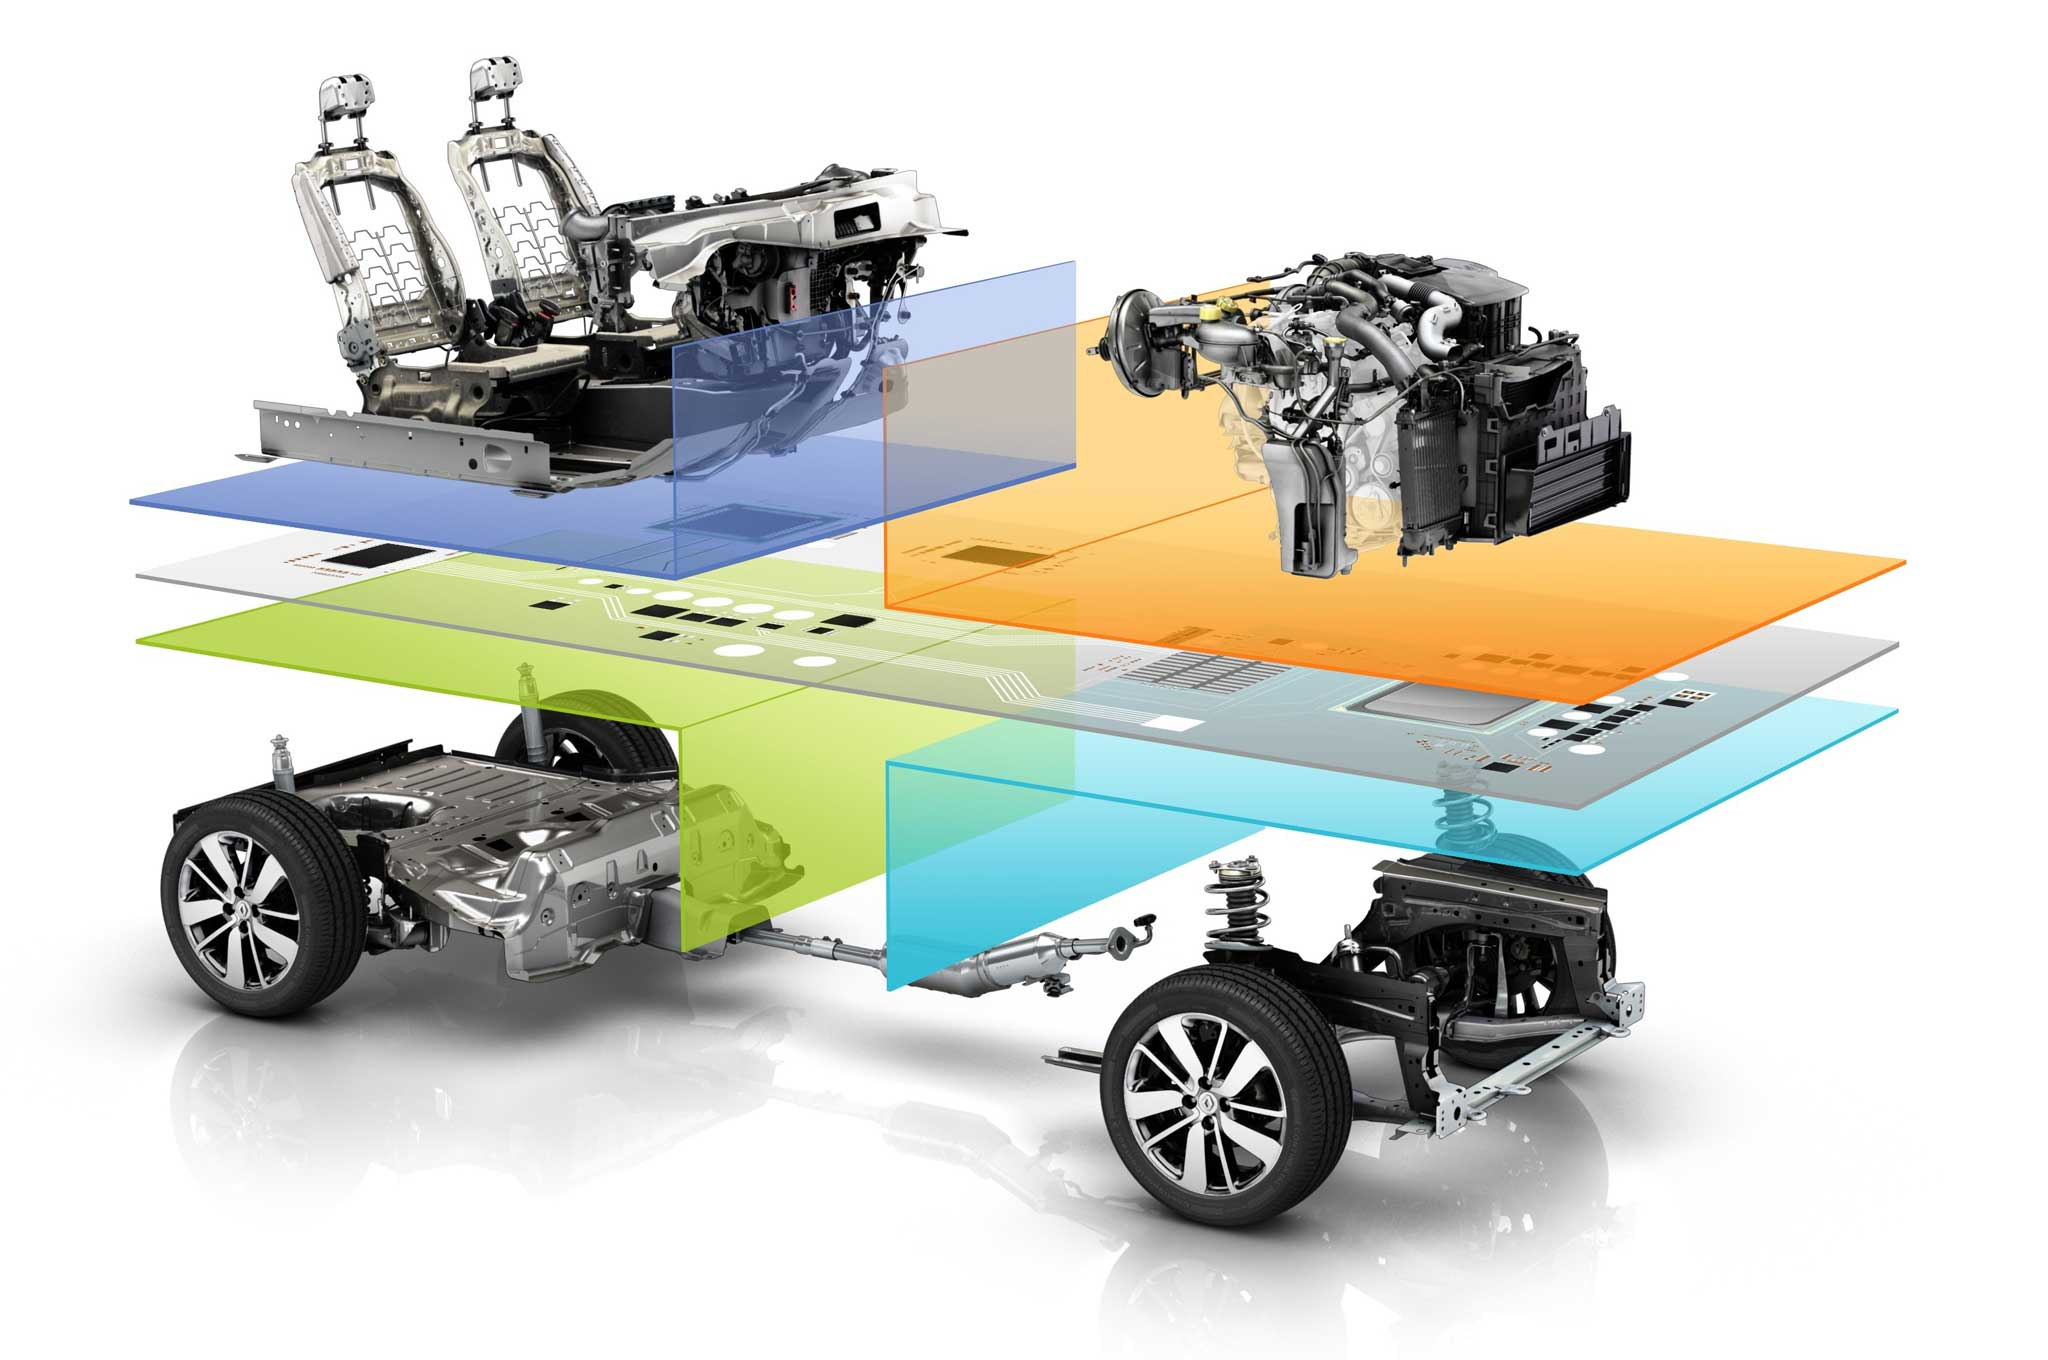 2014 Nissan Rogue Will Use New Renault Modular Platform Photo Leaf Engine Diagram Common Module Family